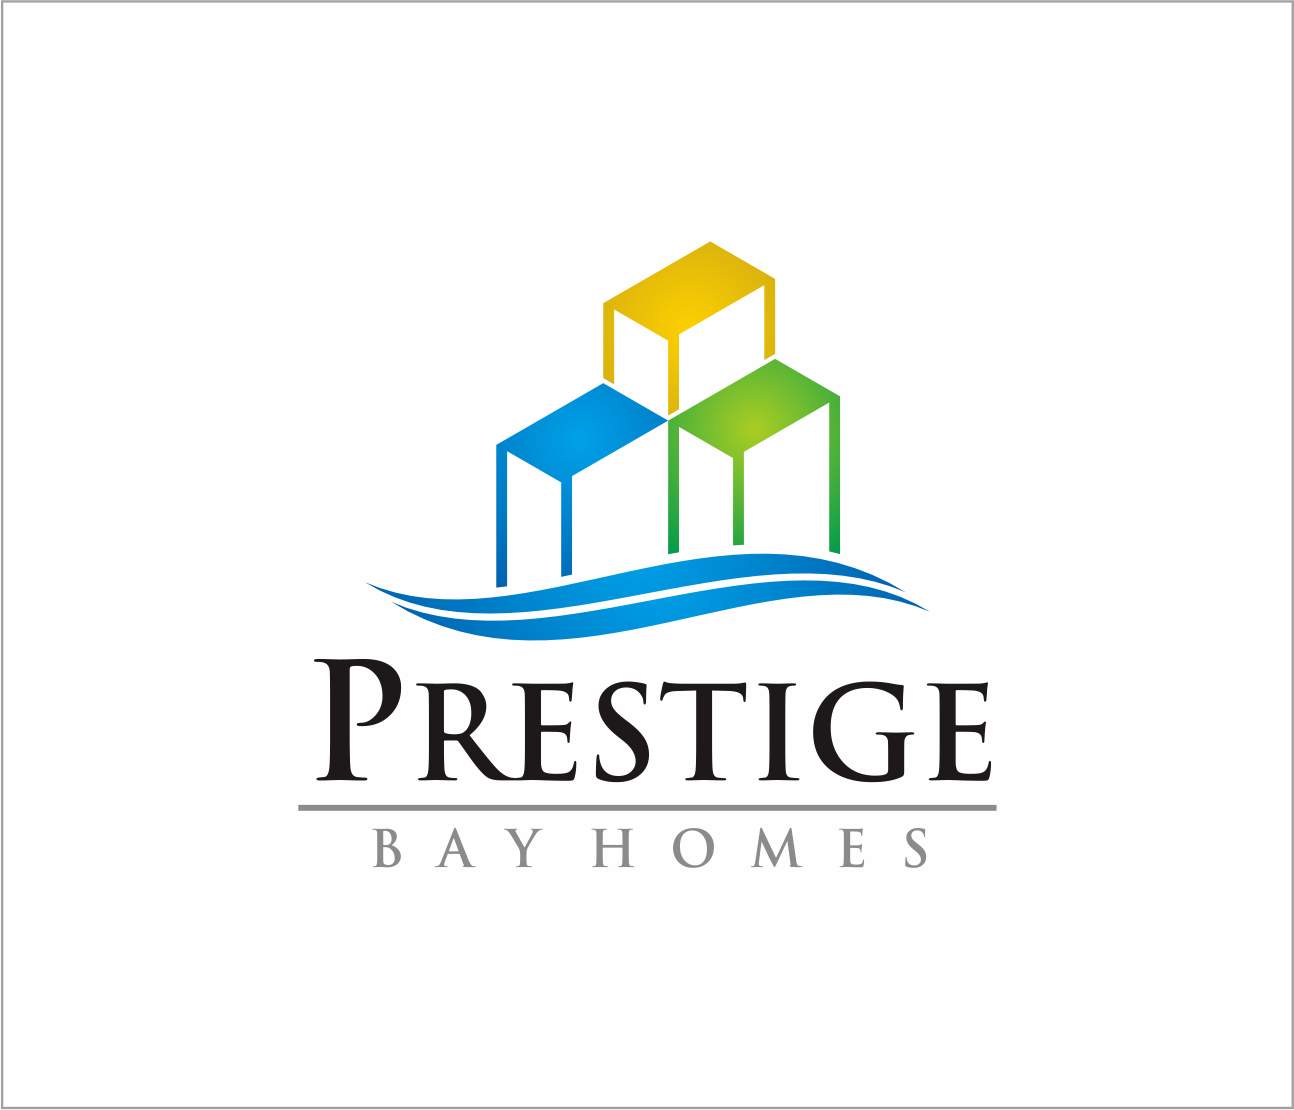 Logo Design by Armada Jamaluddin - Entry No. 166 in the Logo Design Contest Imaginative Logo Design for Prestige Bay Homes.